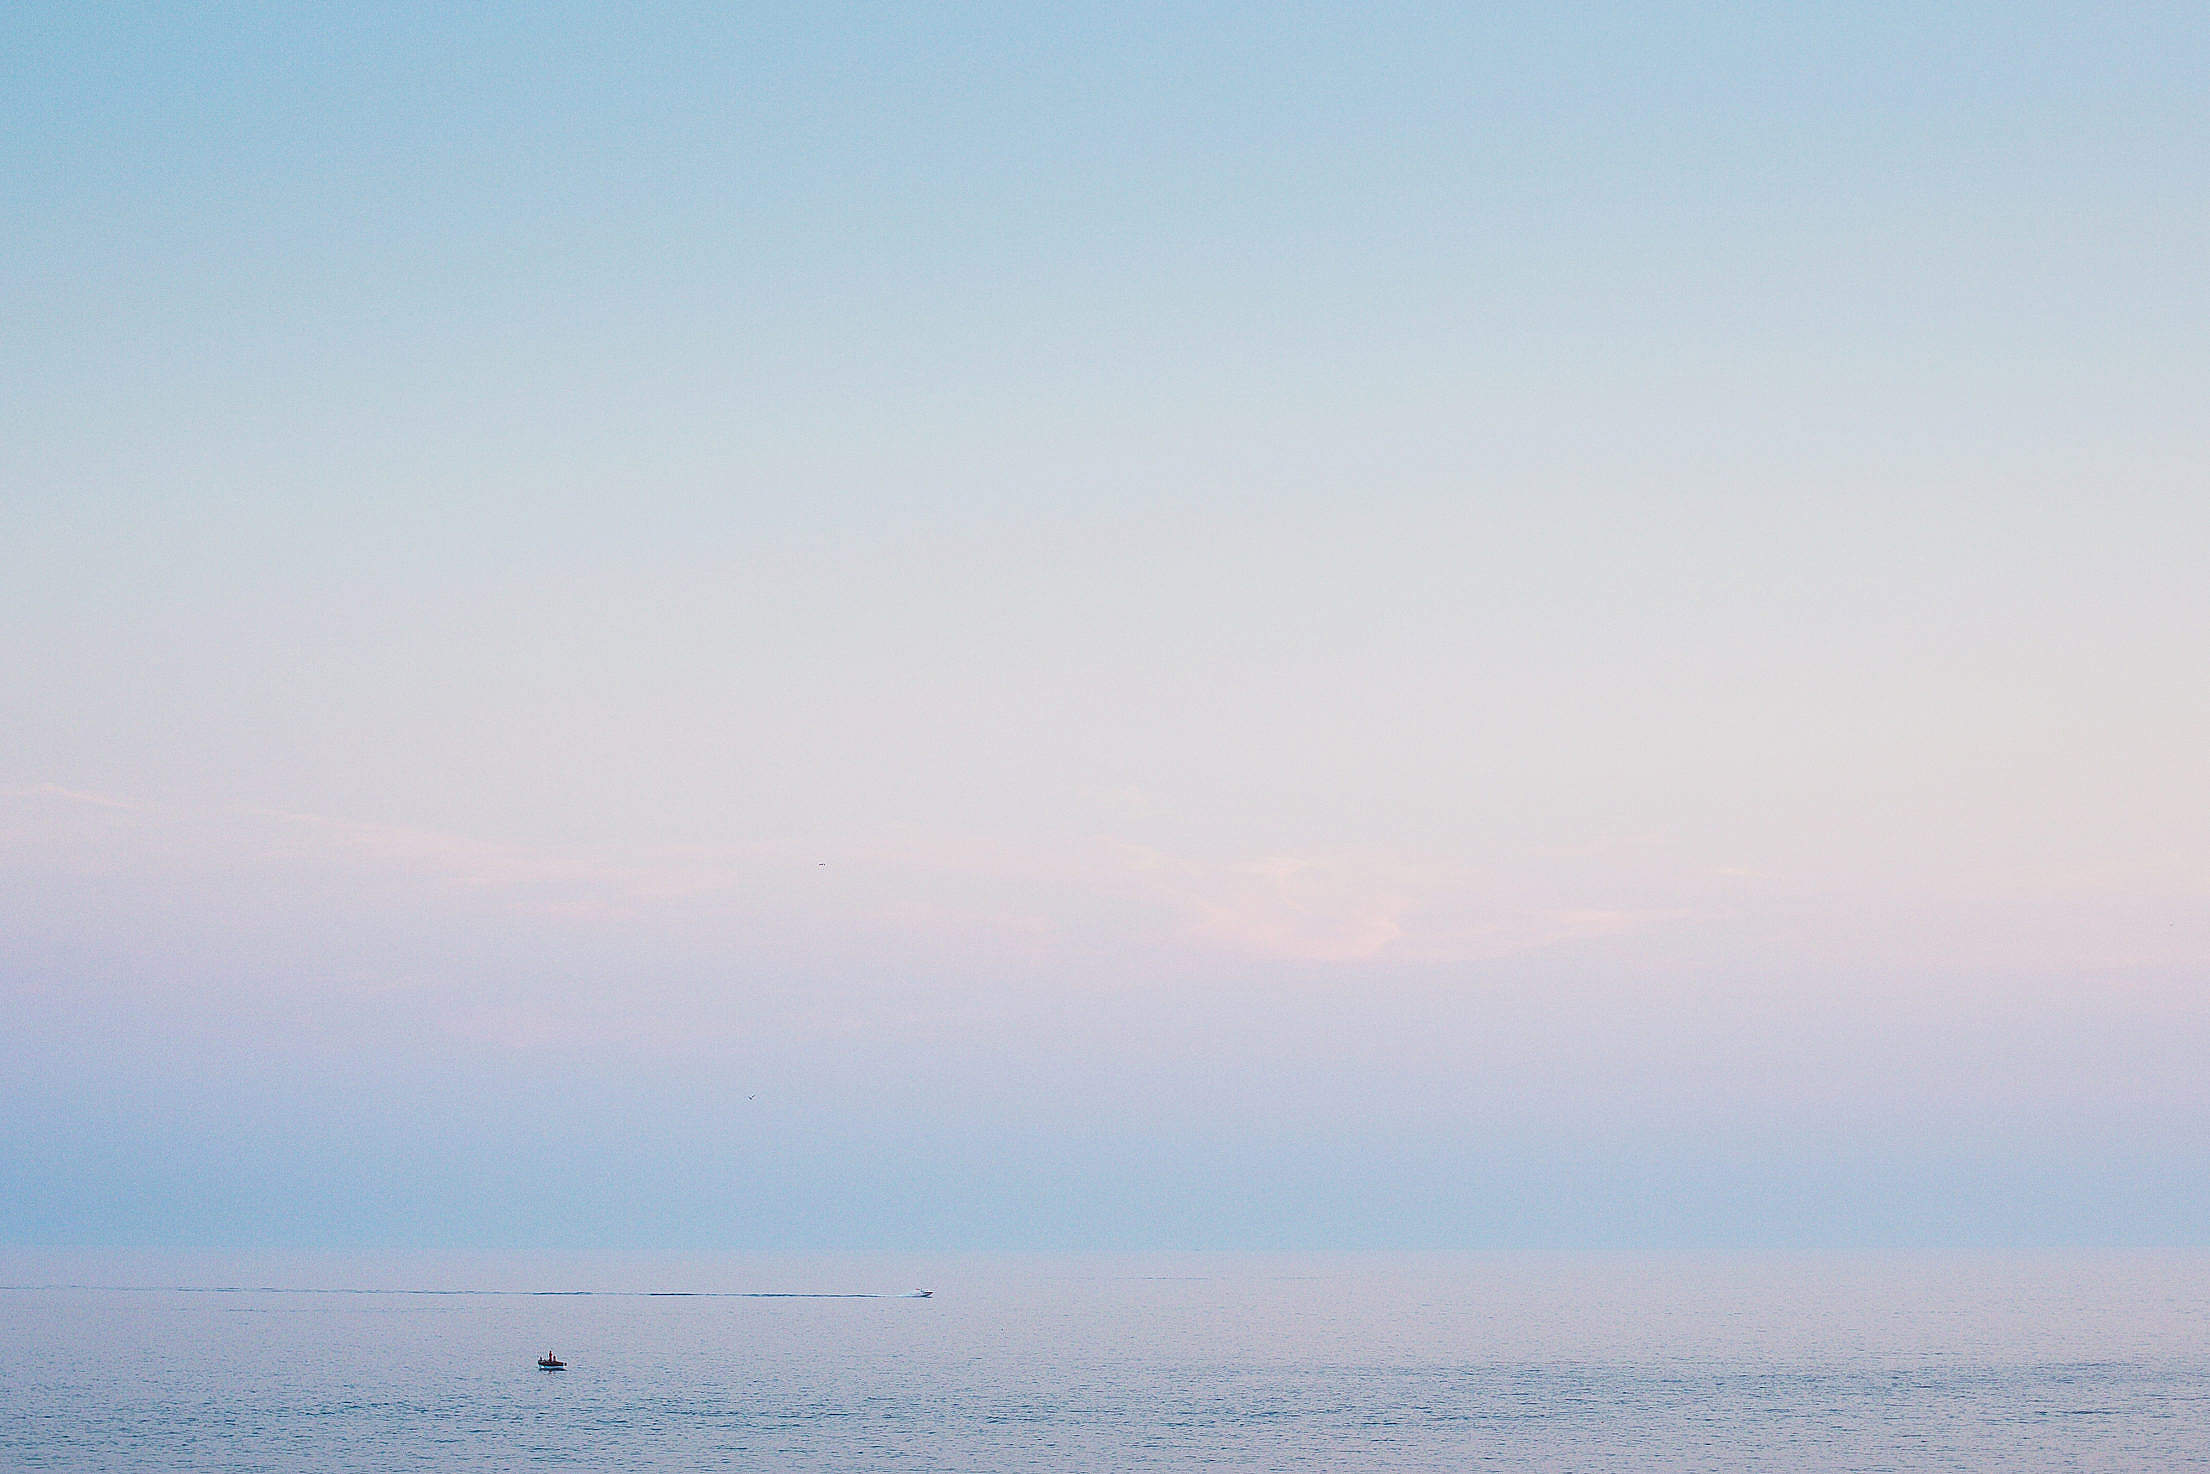 Minimalist Evening Sea Horizon Free Stock Photo